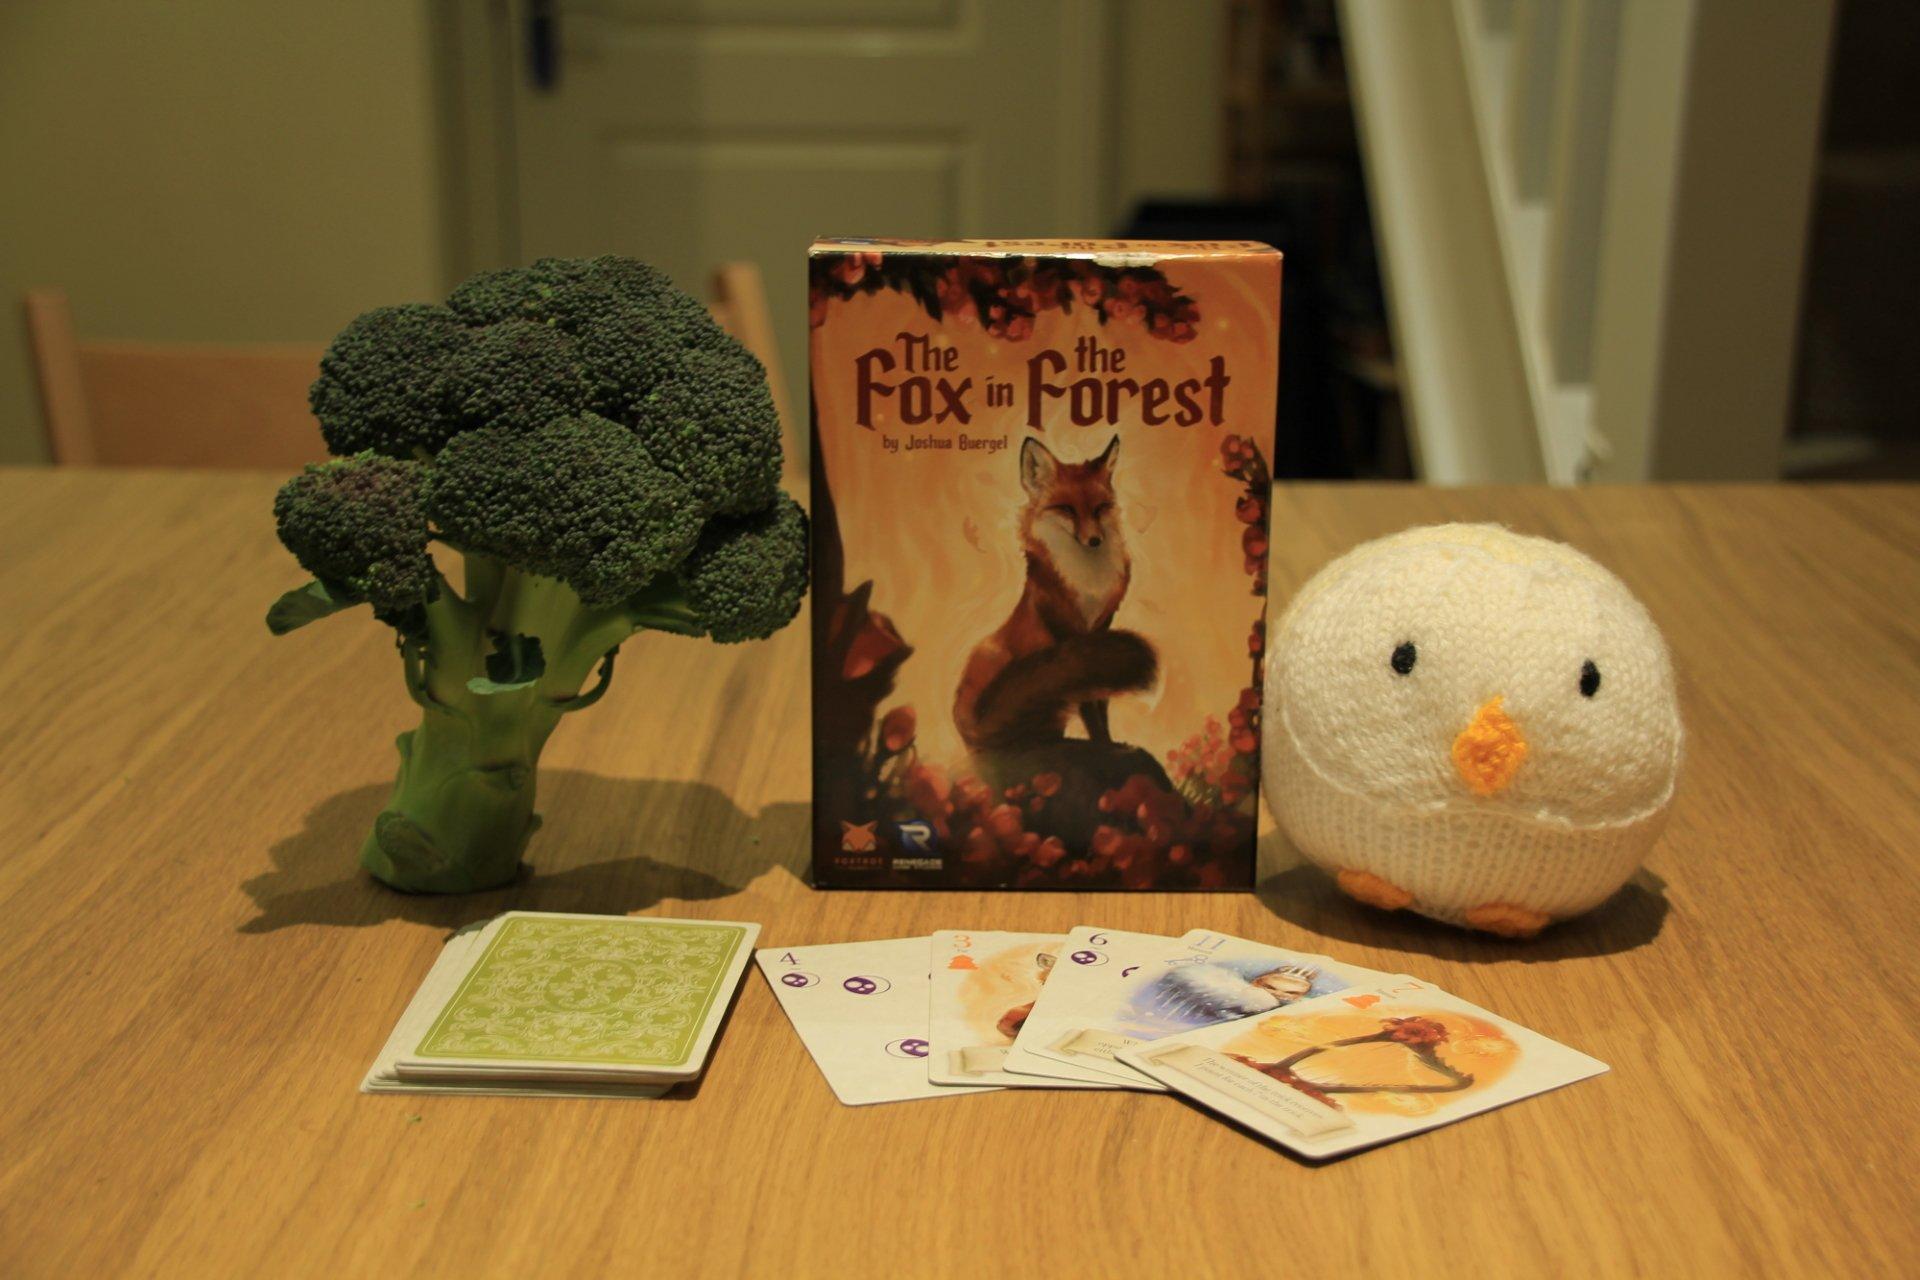 Sadly, each copy of Fox in the Forest does not come with a broccoli tree or knitted owl.